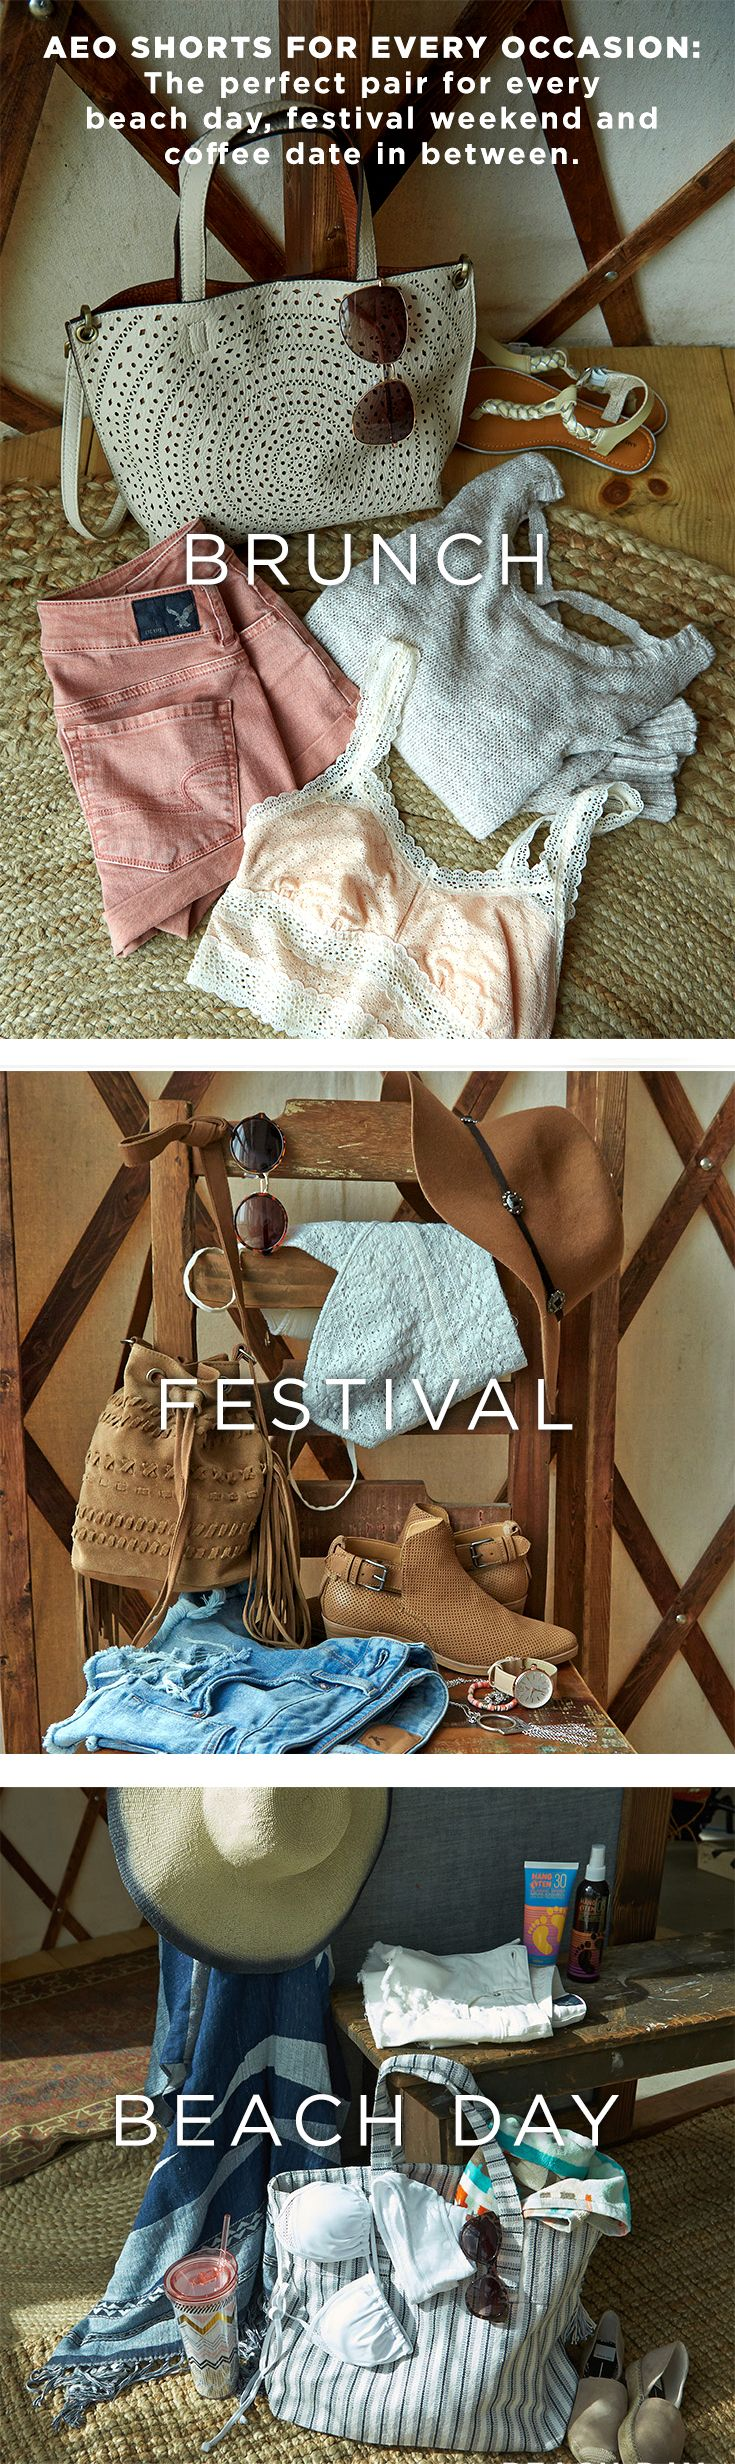 From Denim X Hi-Rise to Midi to Festival Shorties and more, we've got the perfect pair of shorts for every beach day, festival weekend and coffee date in between. Find your favorite fit at AE.com.